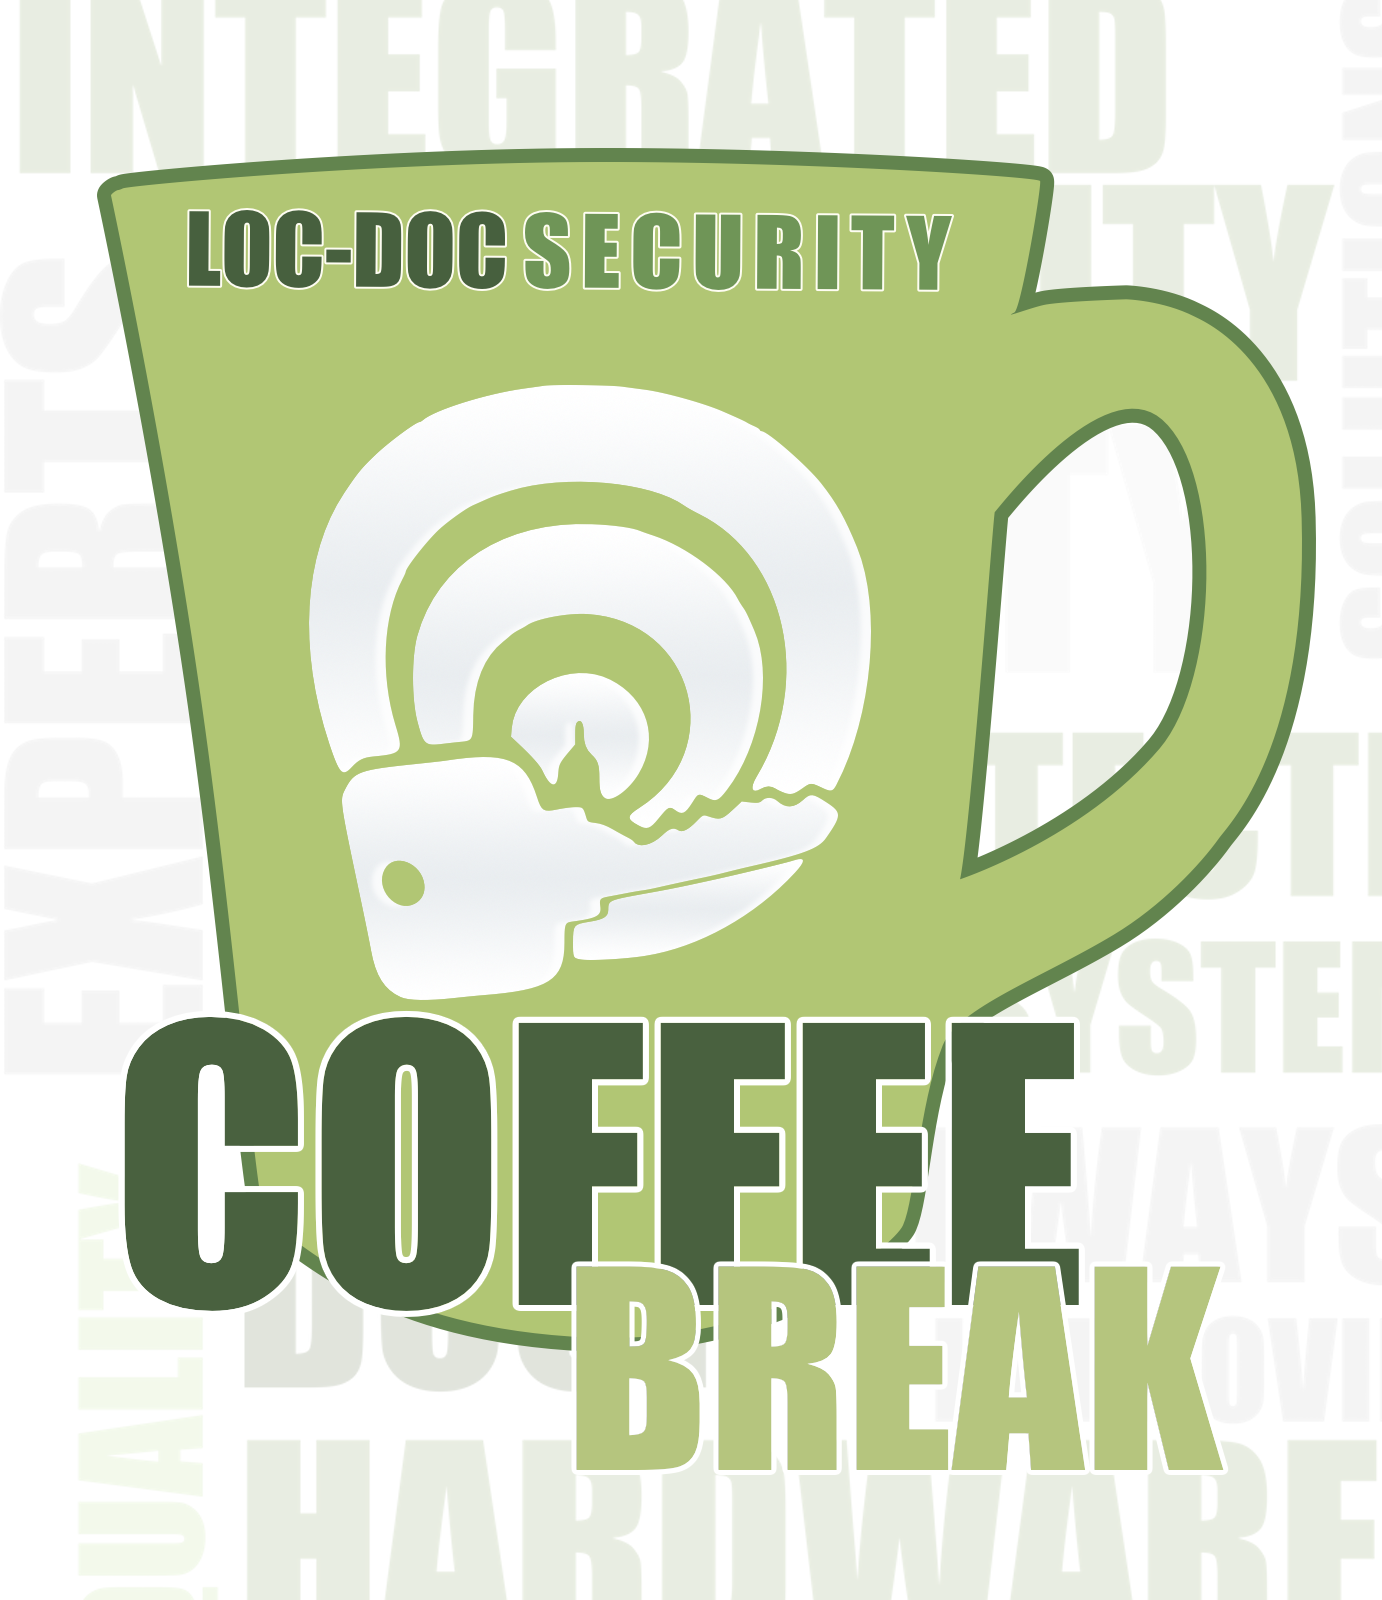 loc-doc security podcast, a locksmith podcast called coffee break podcast